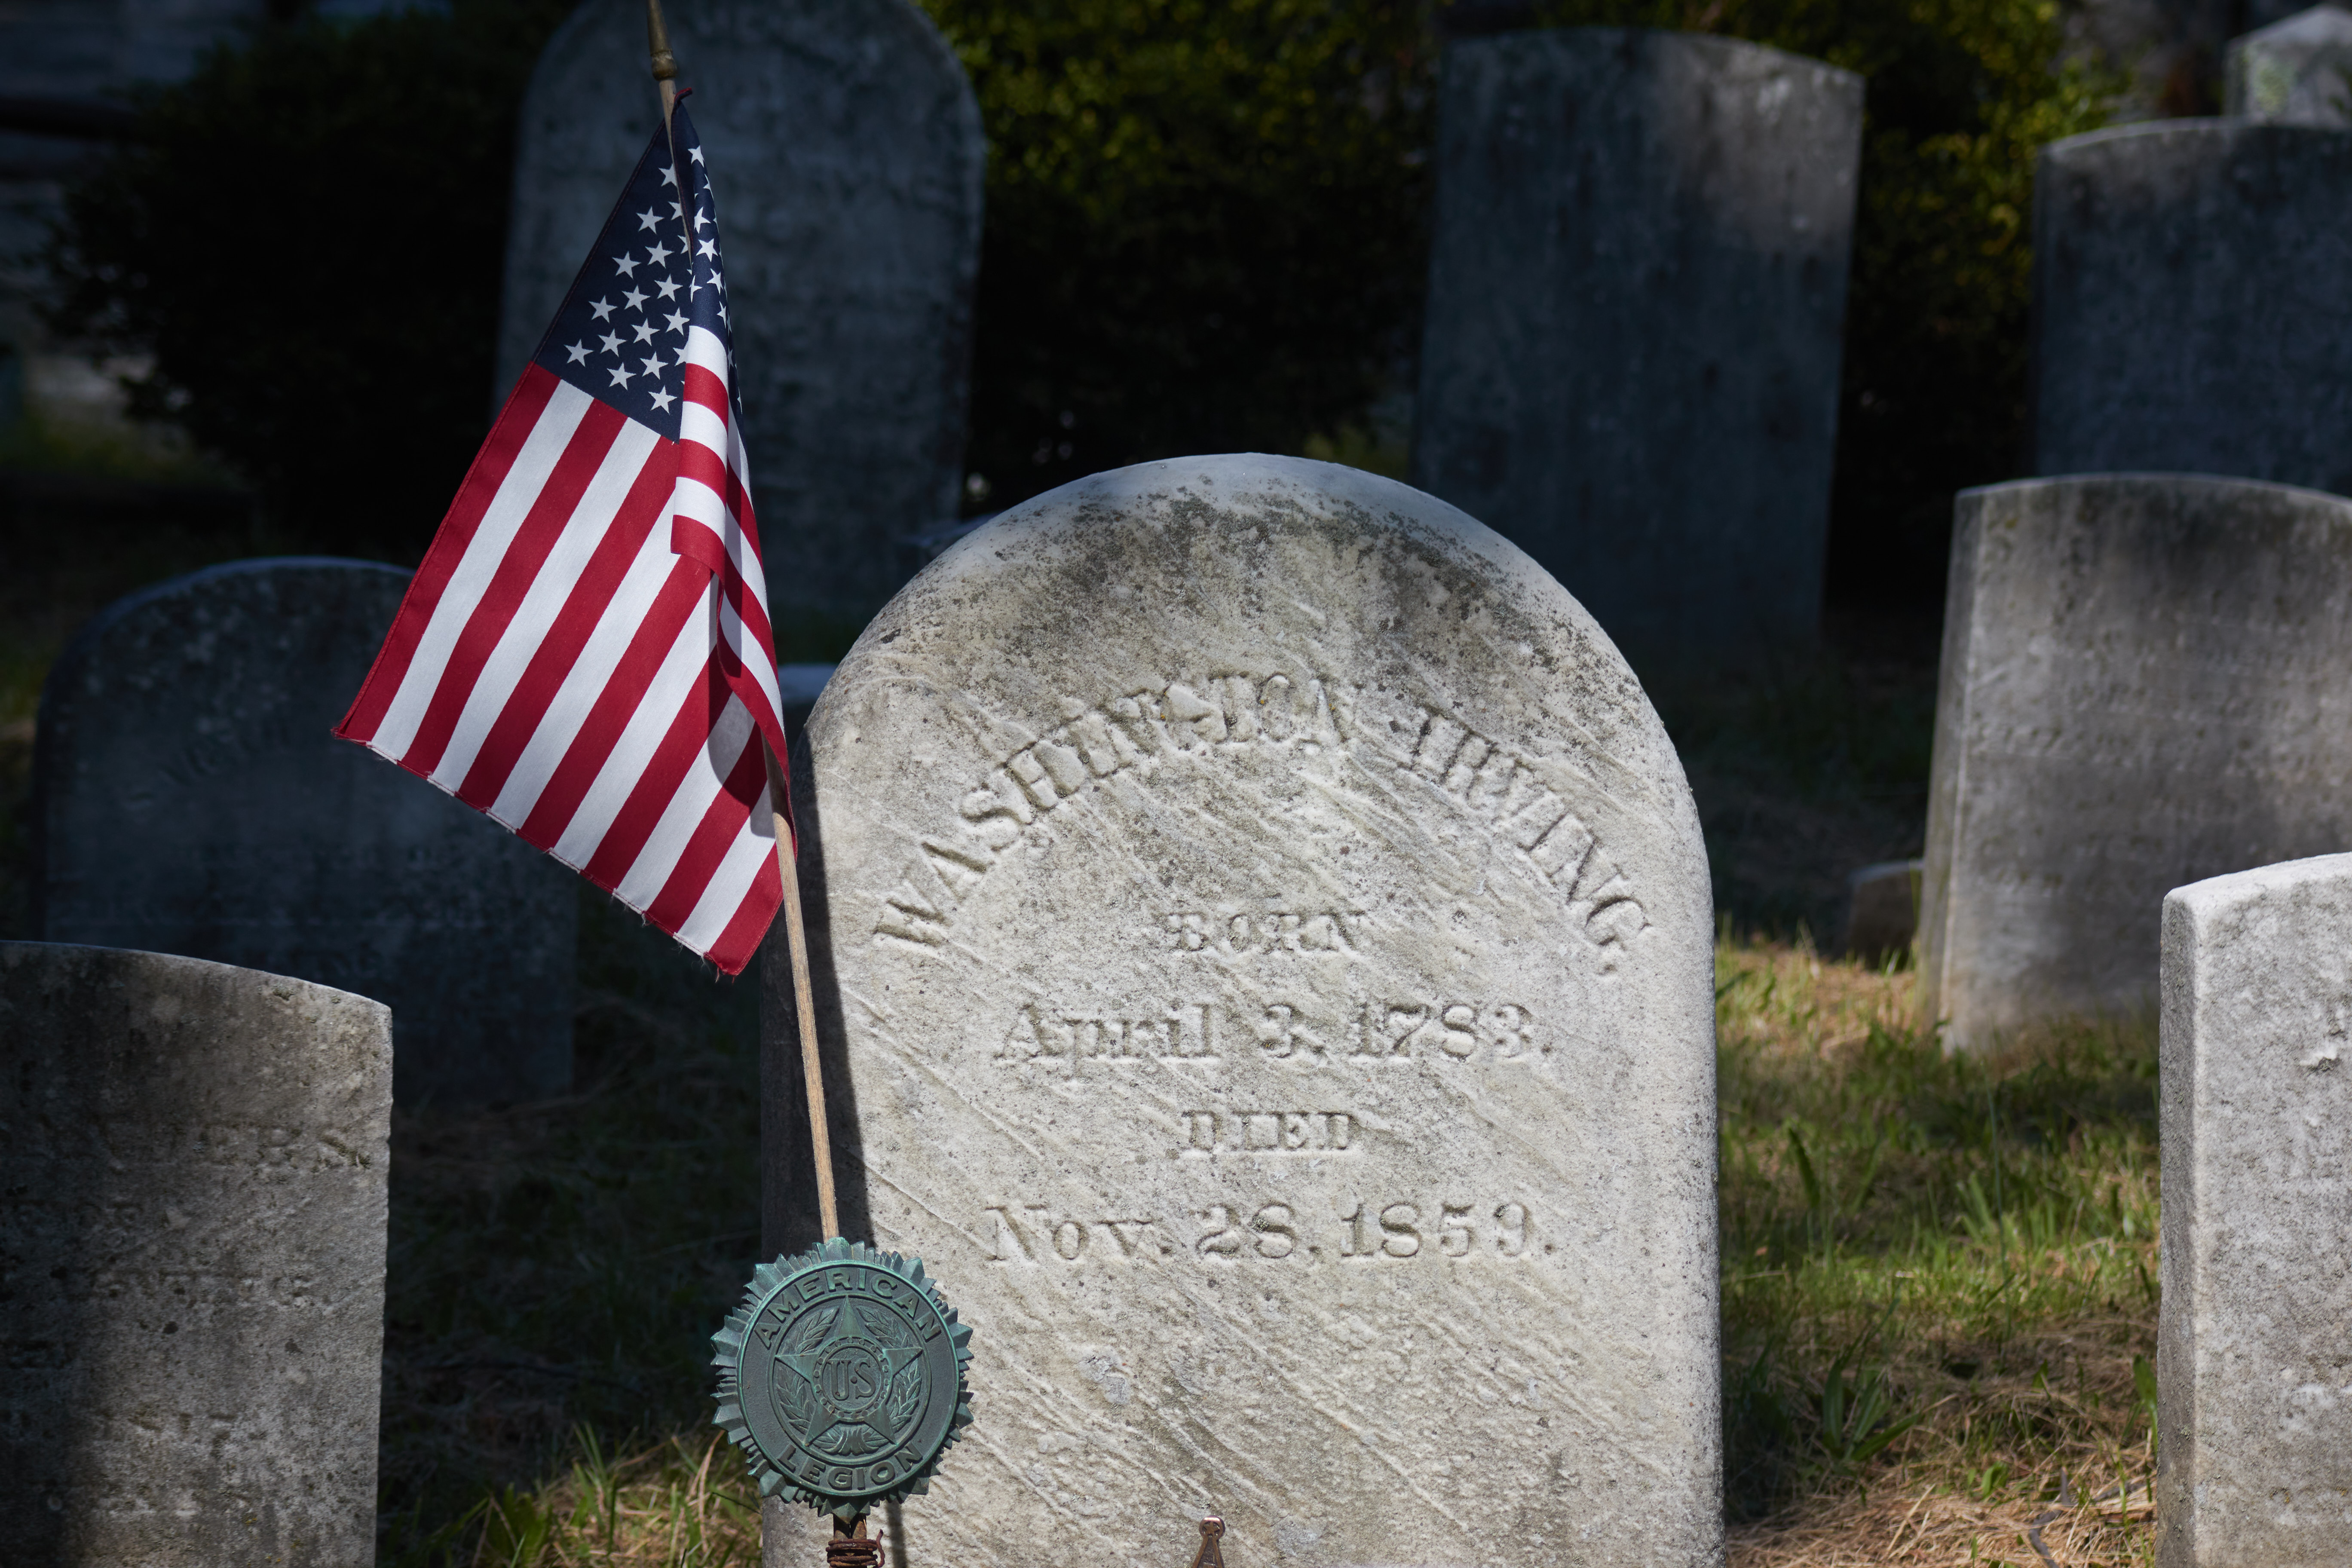 Tombstone that reads WASHINGTON IRVING BORN APRIL 3 1783 DIED NOV 28 1859.